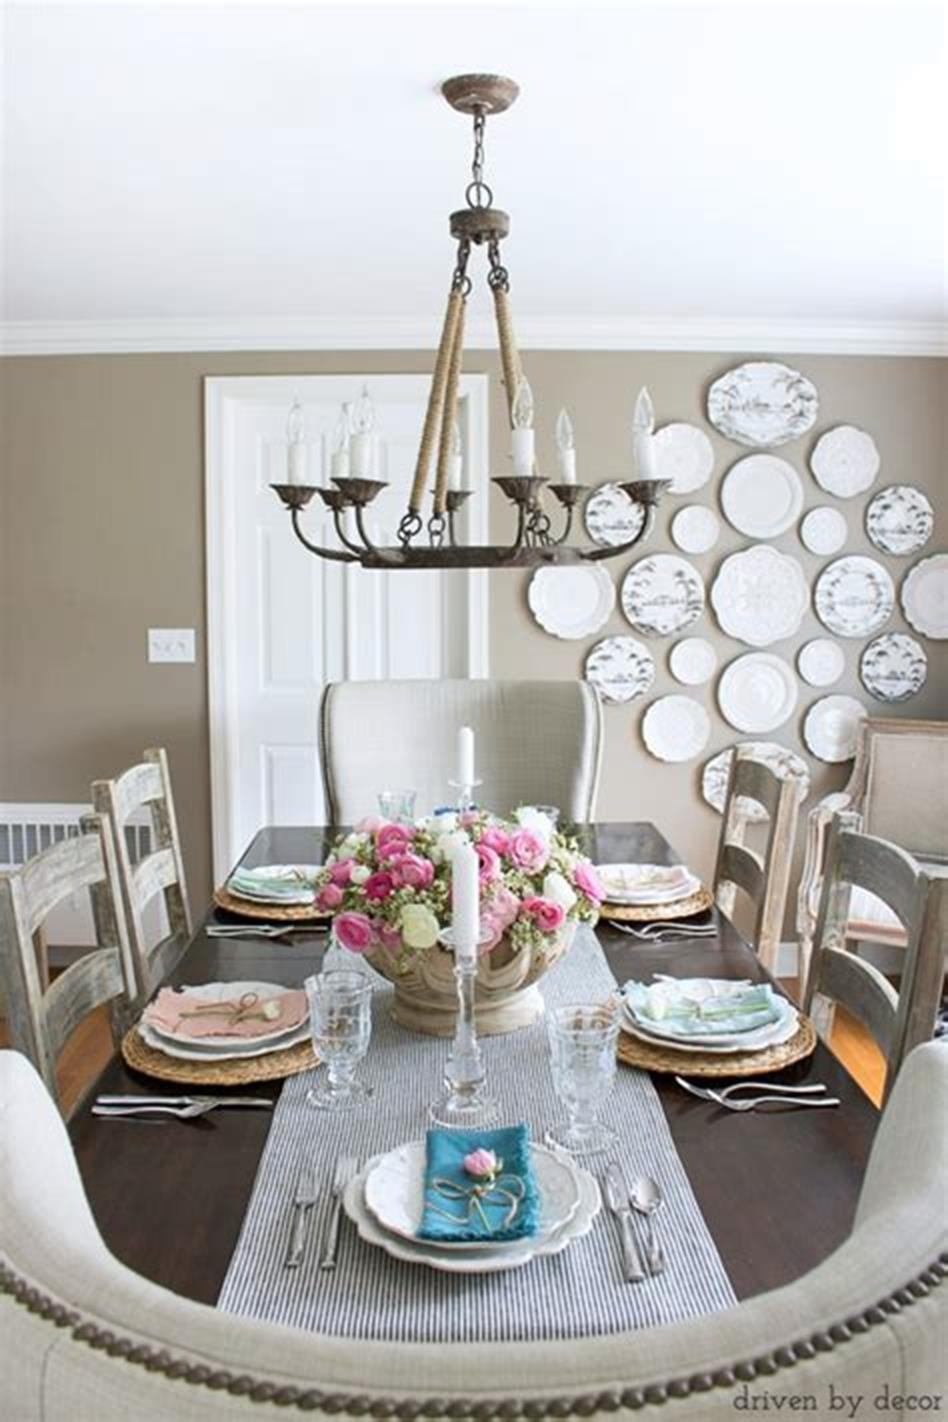 35 Stunning Spring Kitchen and Dining Room Decorating Ideas 2019 30